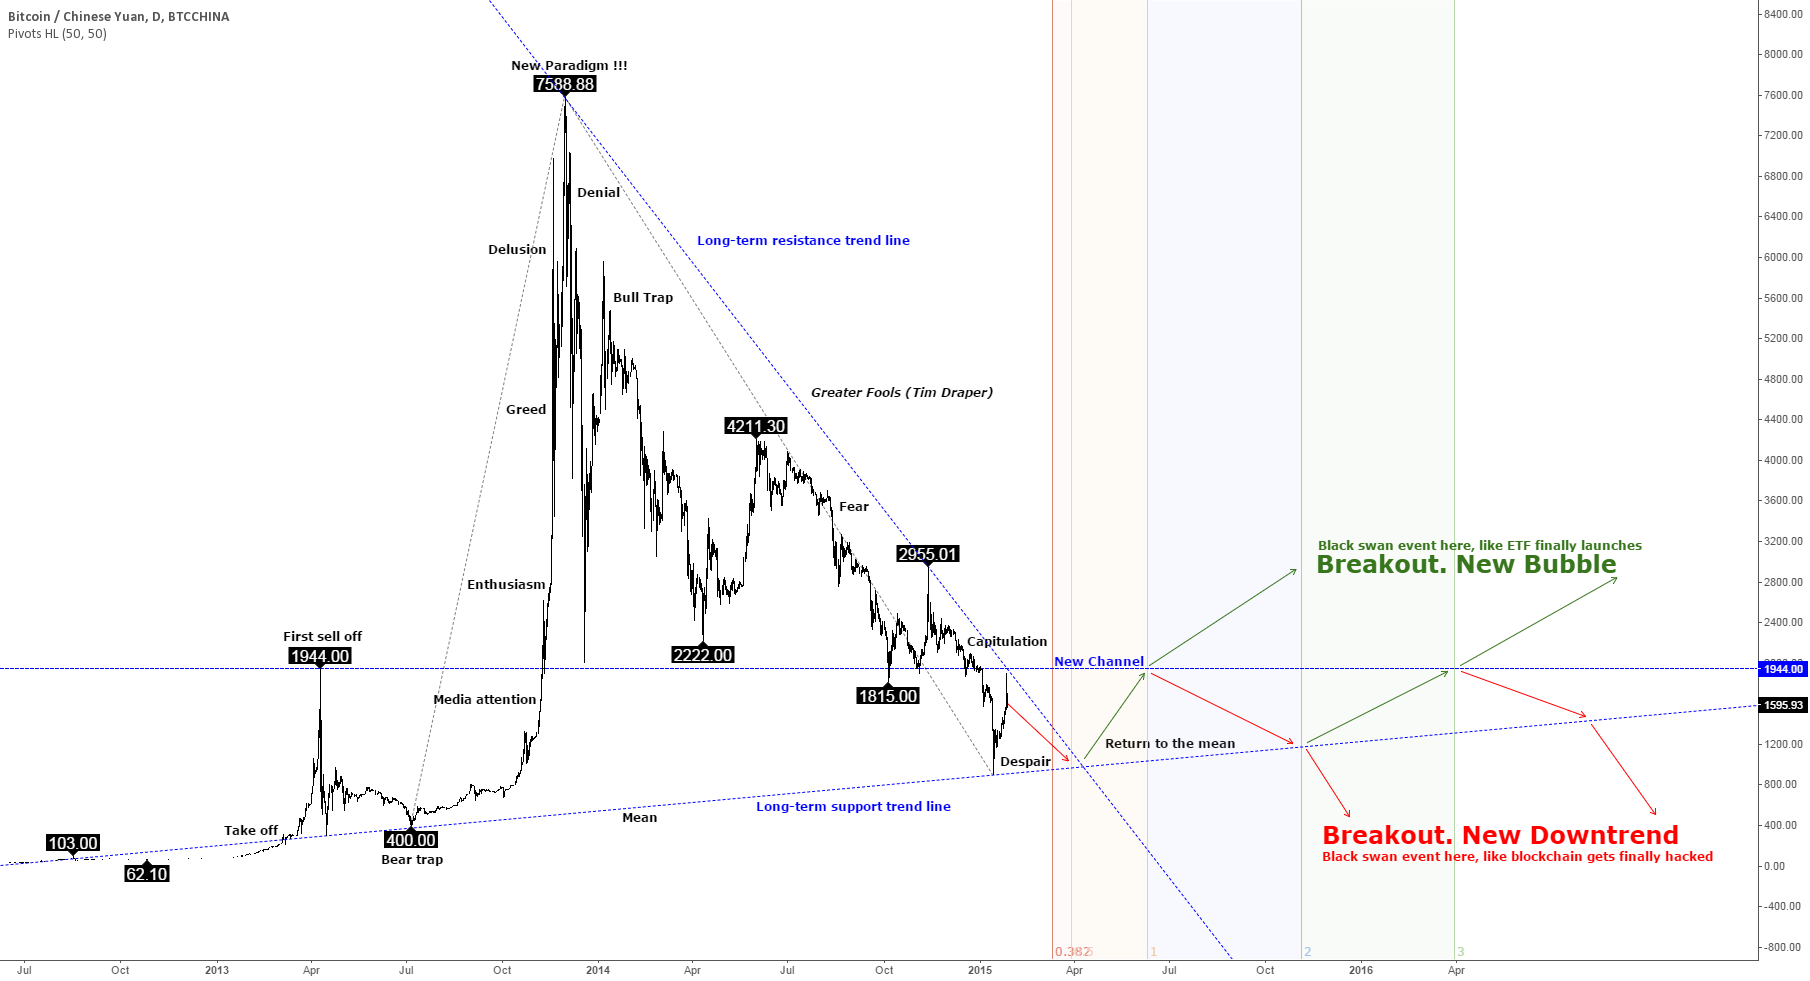 """Bitcoin price in """"despair"""" stage of bubble (BTC chart 2015-2016)"""